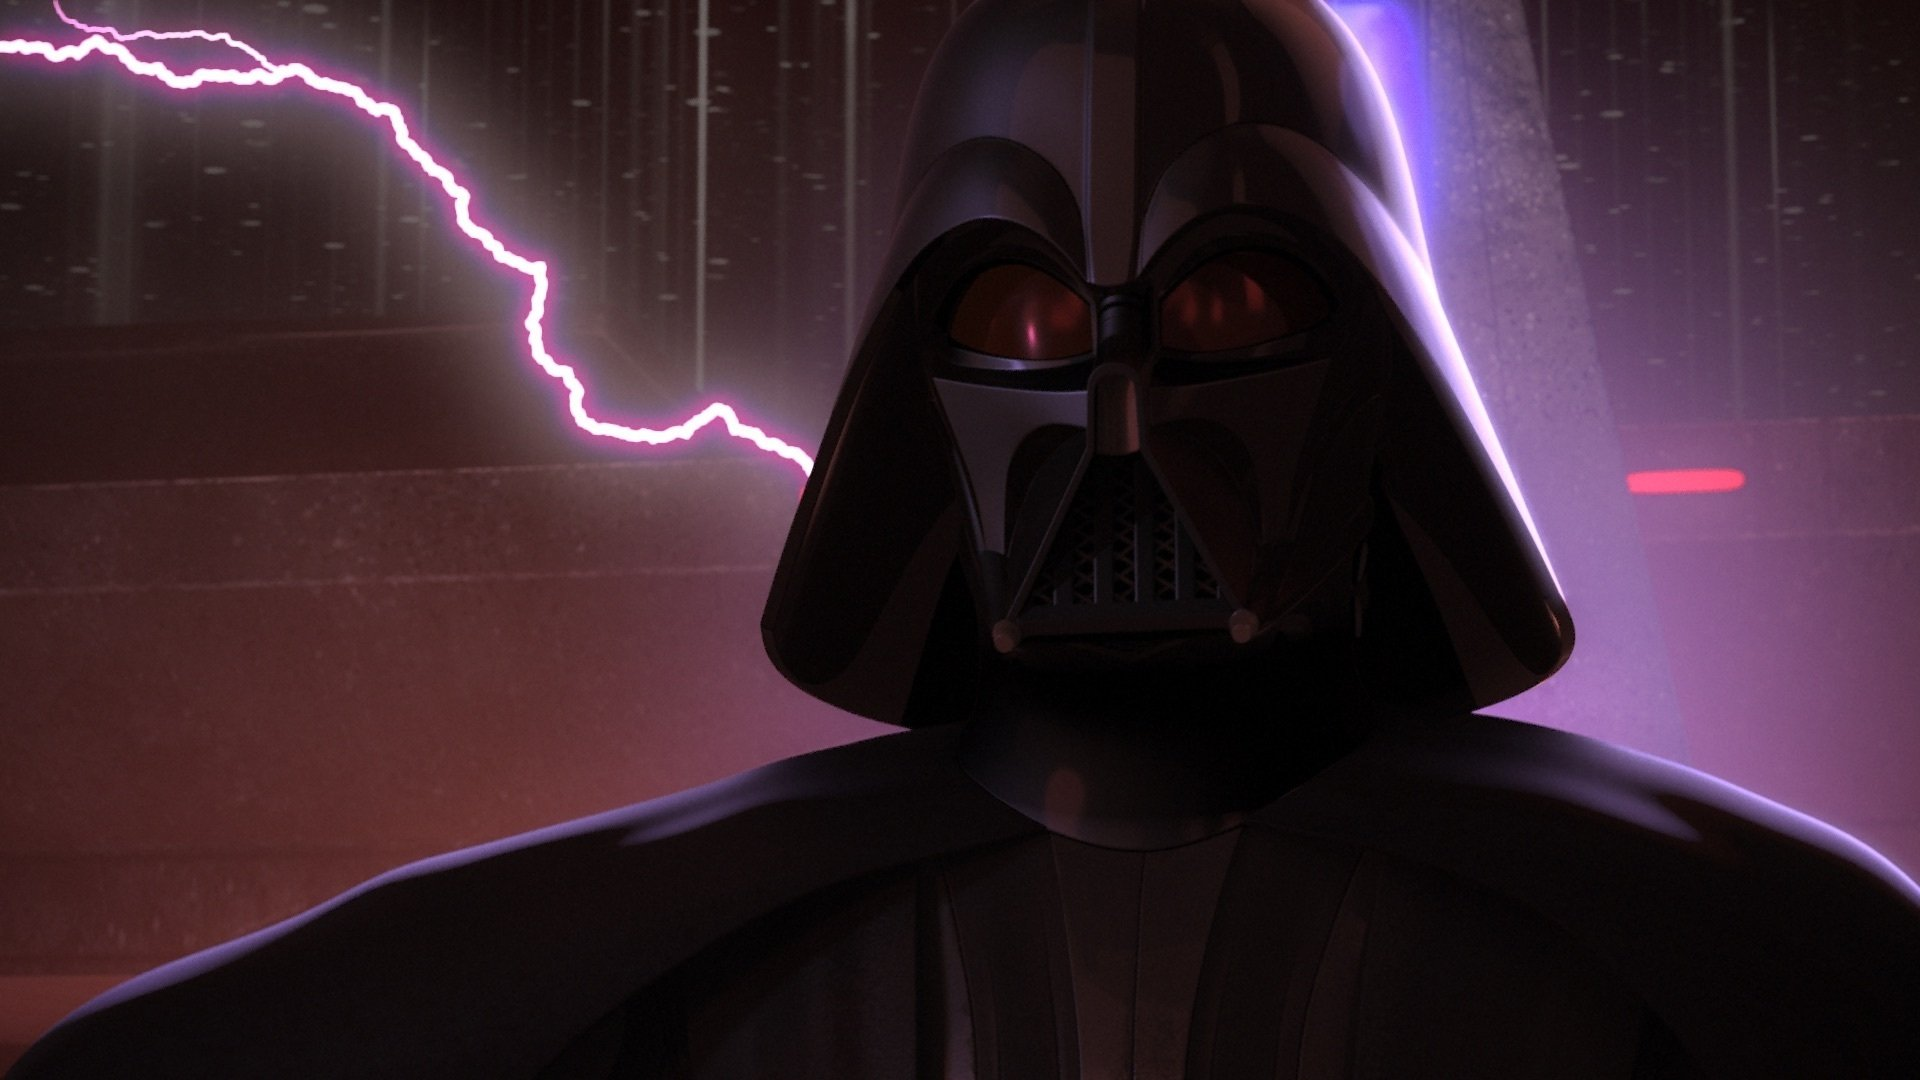 TV Show - Star Wars Rebels  Darth Vader Wallpaper